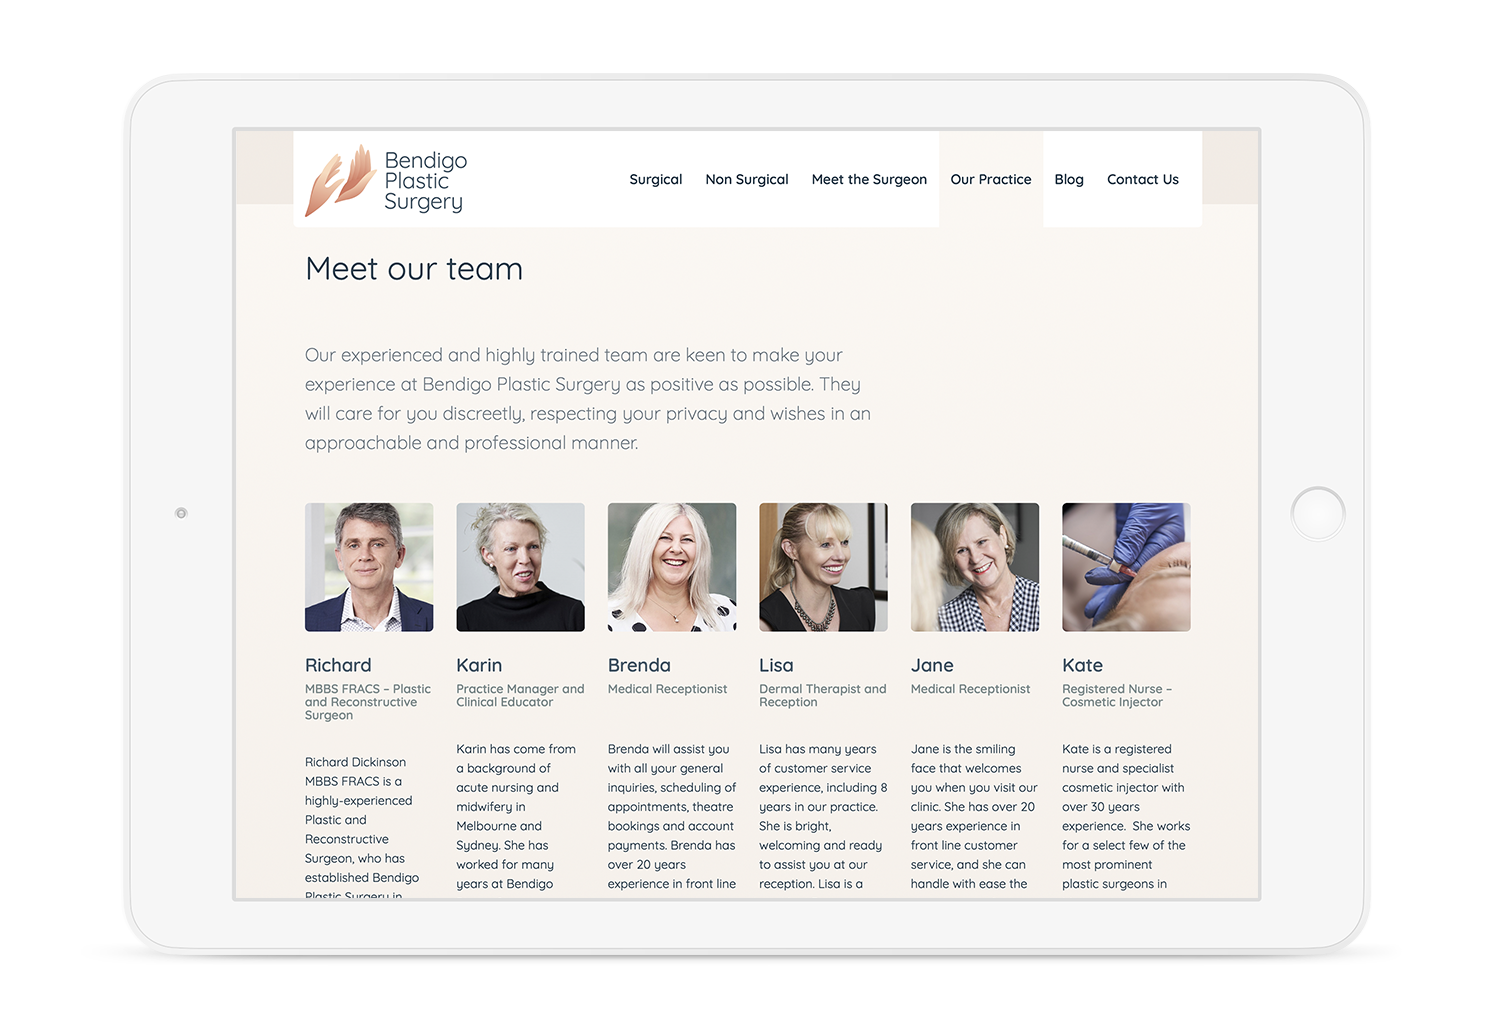 Bendigo Plastic Surgery Website Our Practice Page Team List on iPad